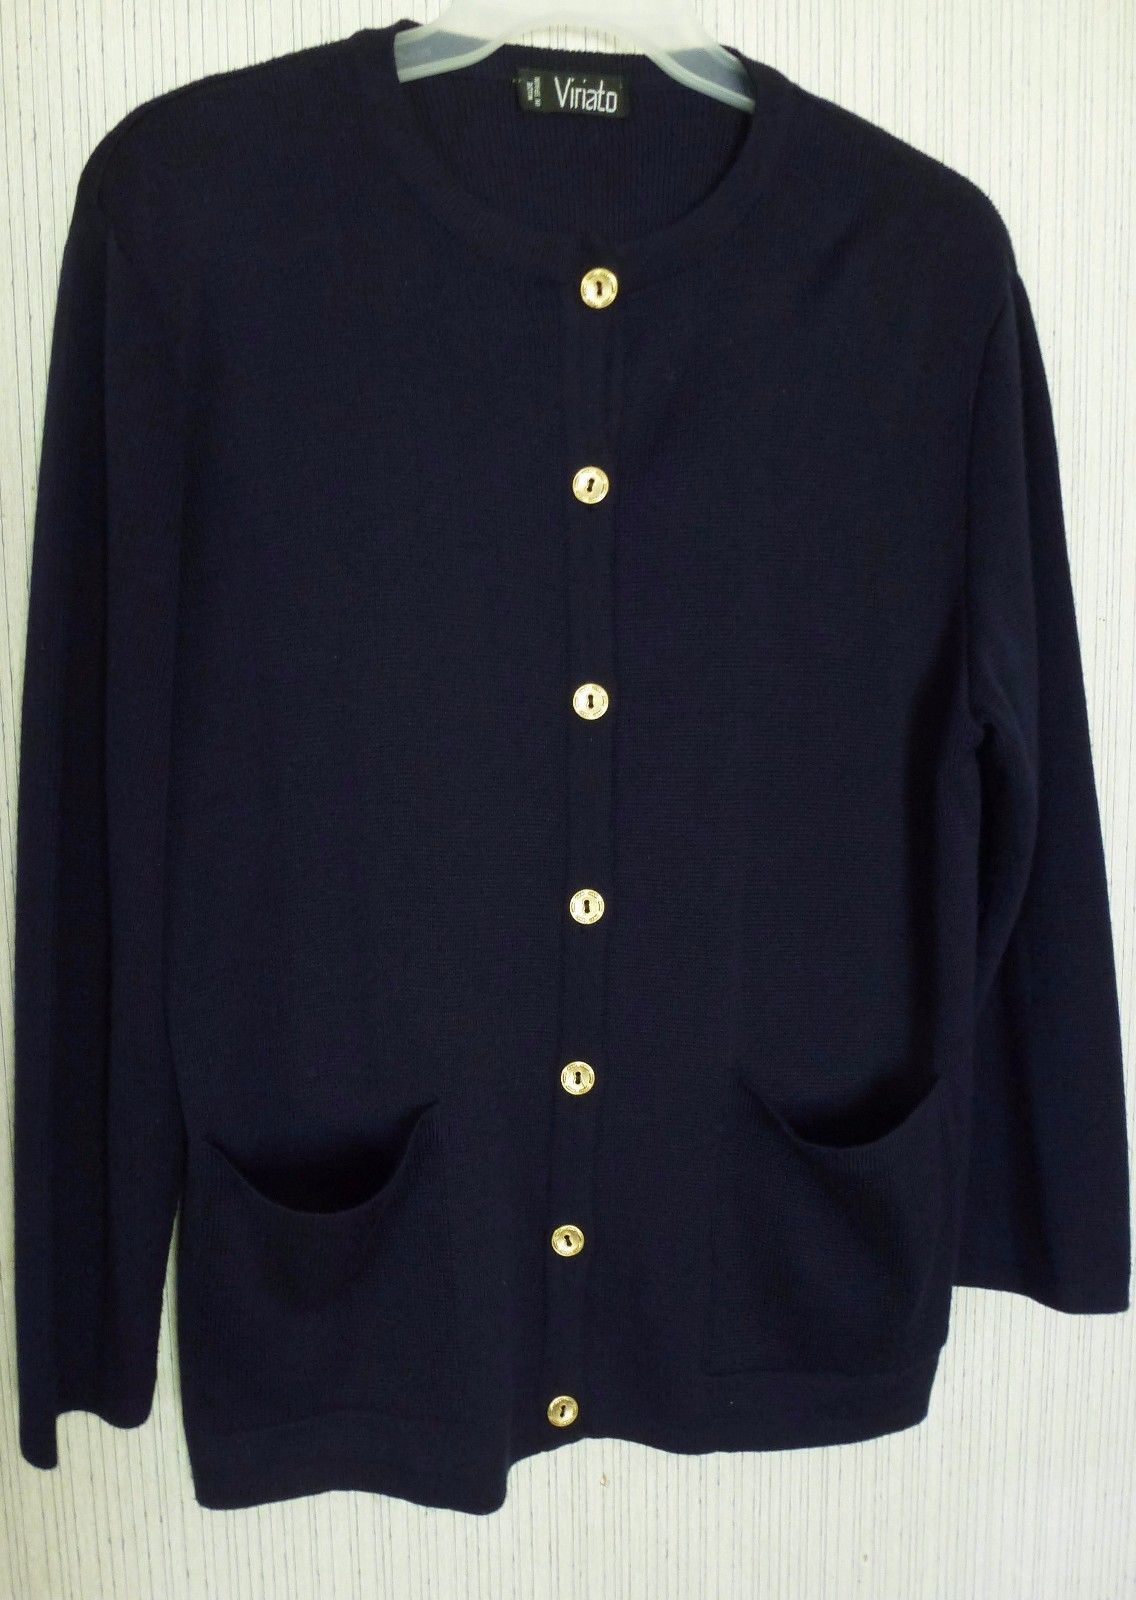 Virial women's cardigan sweater size xl navy blue gold buttons100 ...